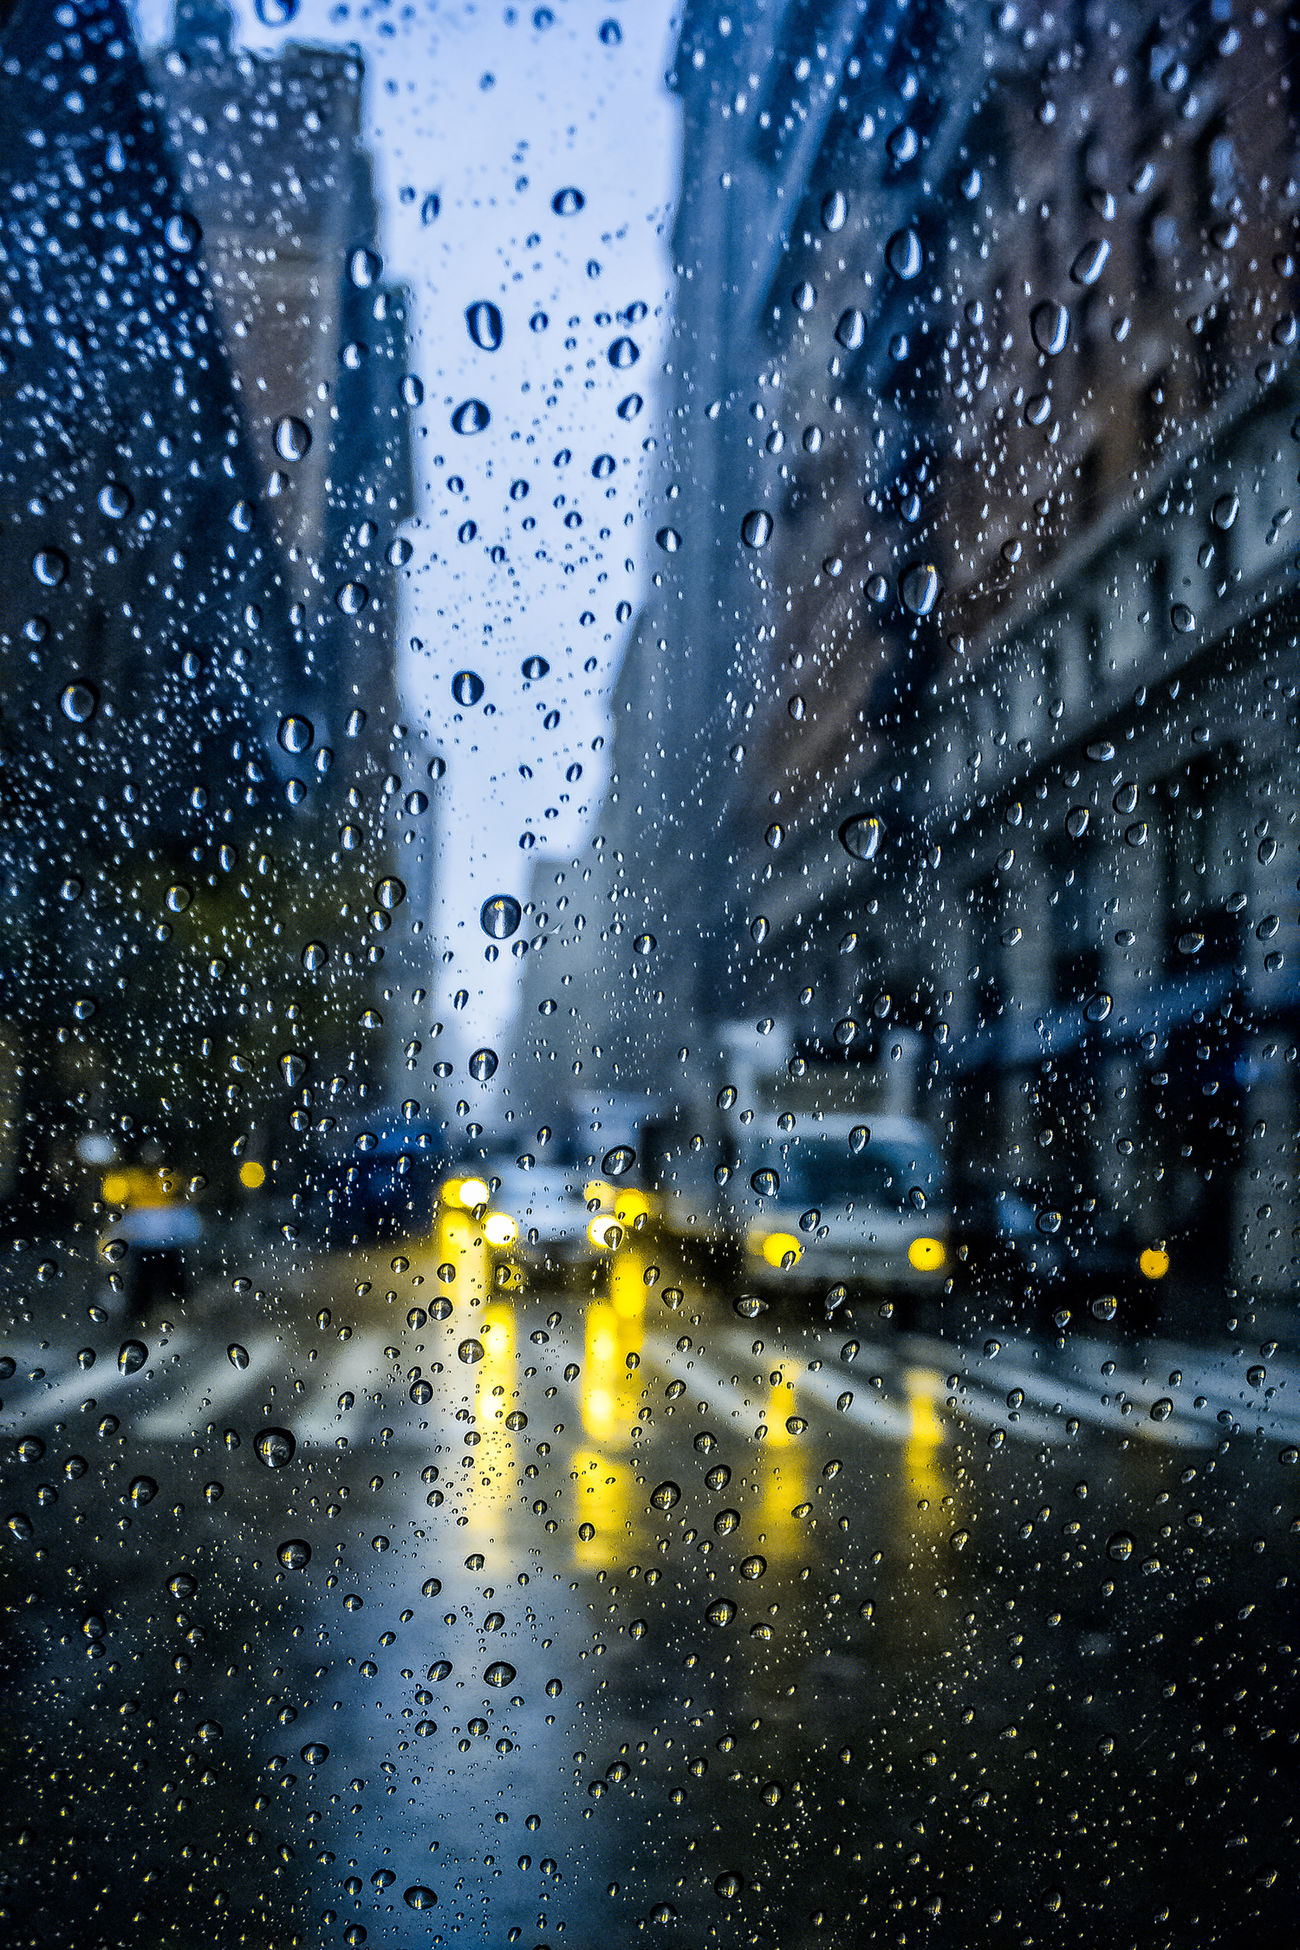 Lights Architecture Building Exterior Buildings Car Car Interior Close-up Day Drop Glass - Material Land Vehicle Nature No People Rain RainDrop Rainy Season Reflections Road Sky Streetphotography Transportation Water Weather Wet Window Windshield